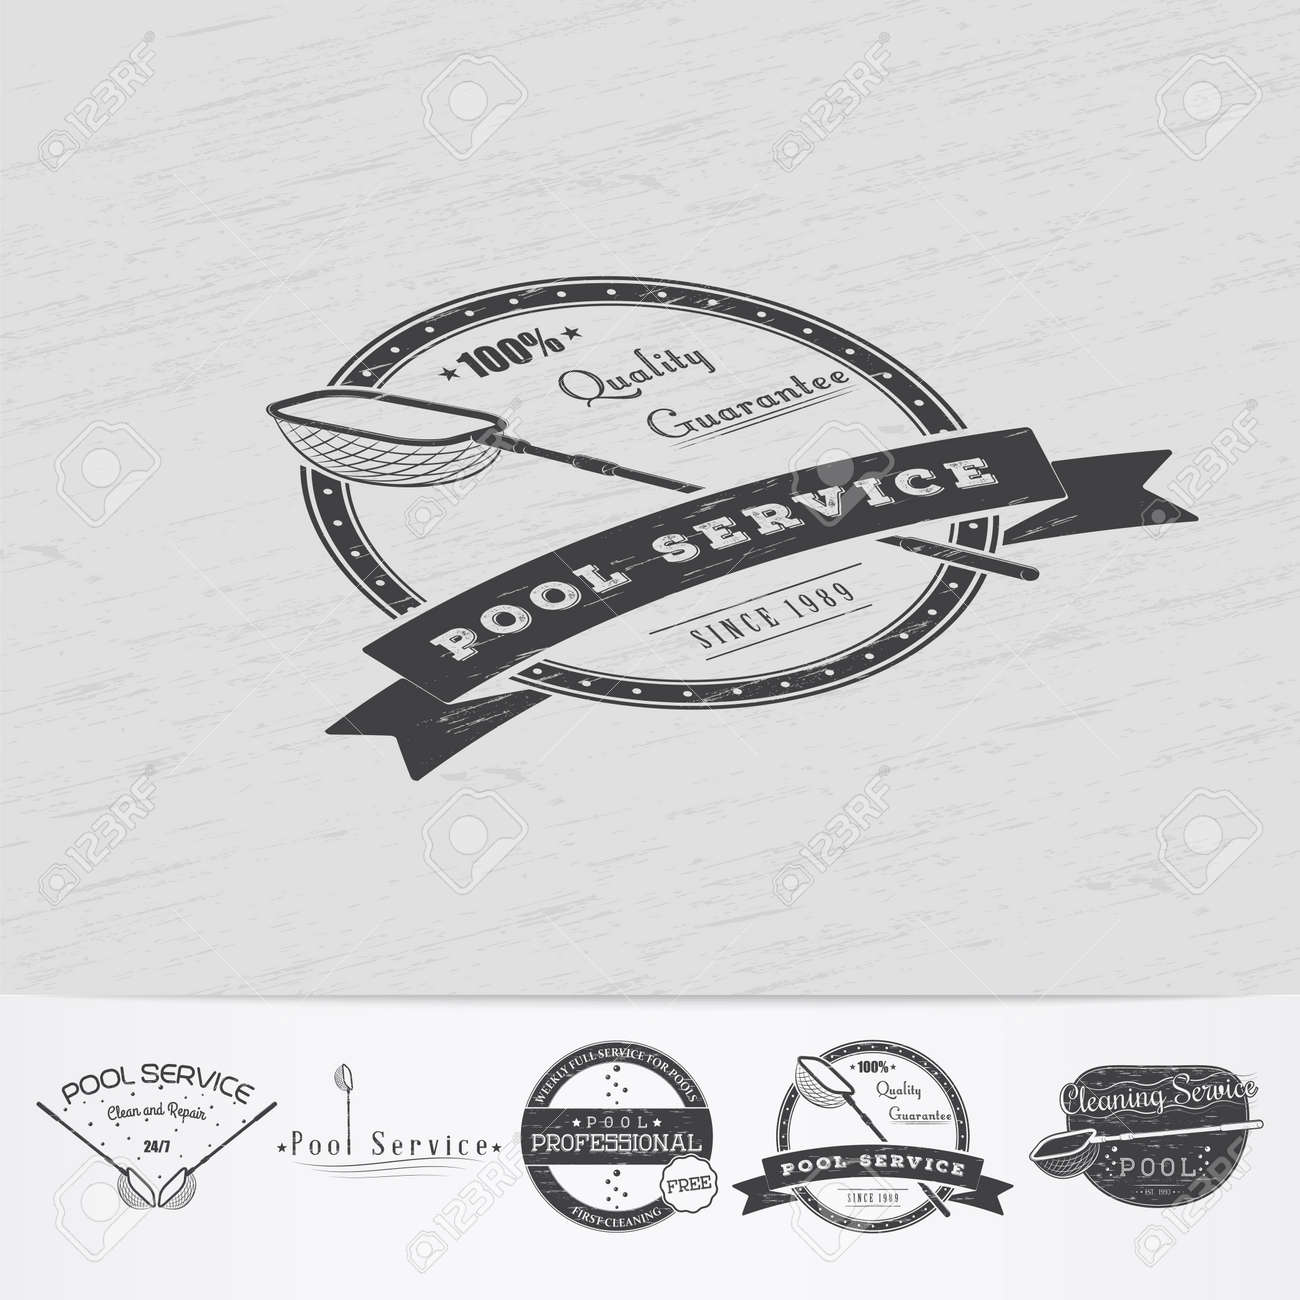 pool service logo. Pool Service. Maintenance And Cleaning. Repair Adjustment Of The House. Old Retro Service Logo